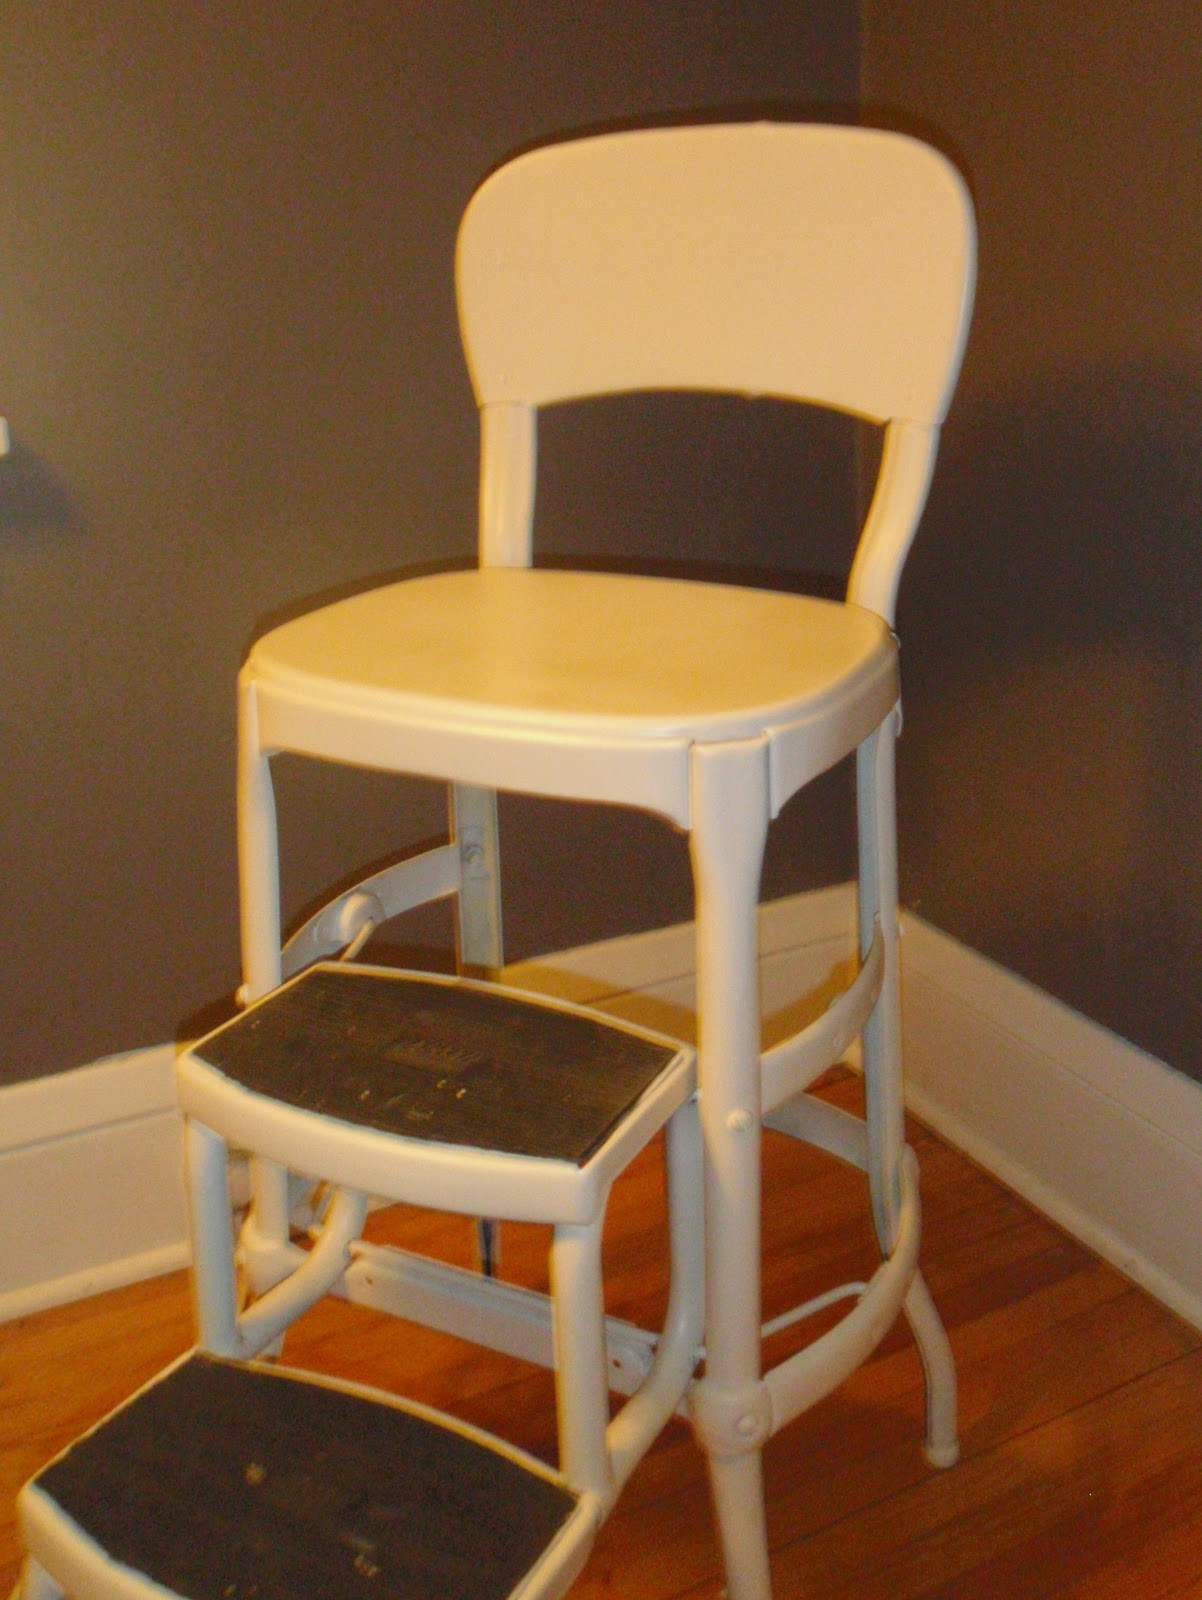 how to get rid of impacted stool